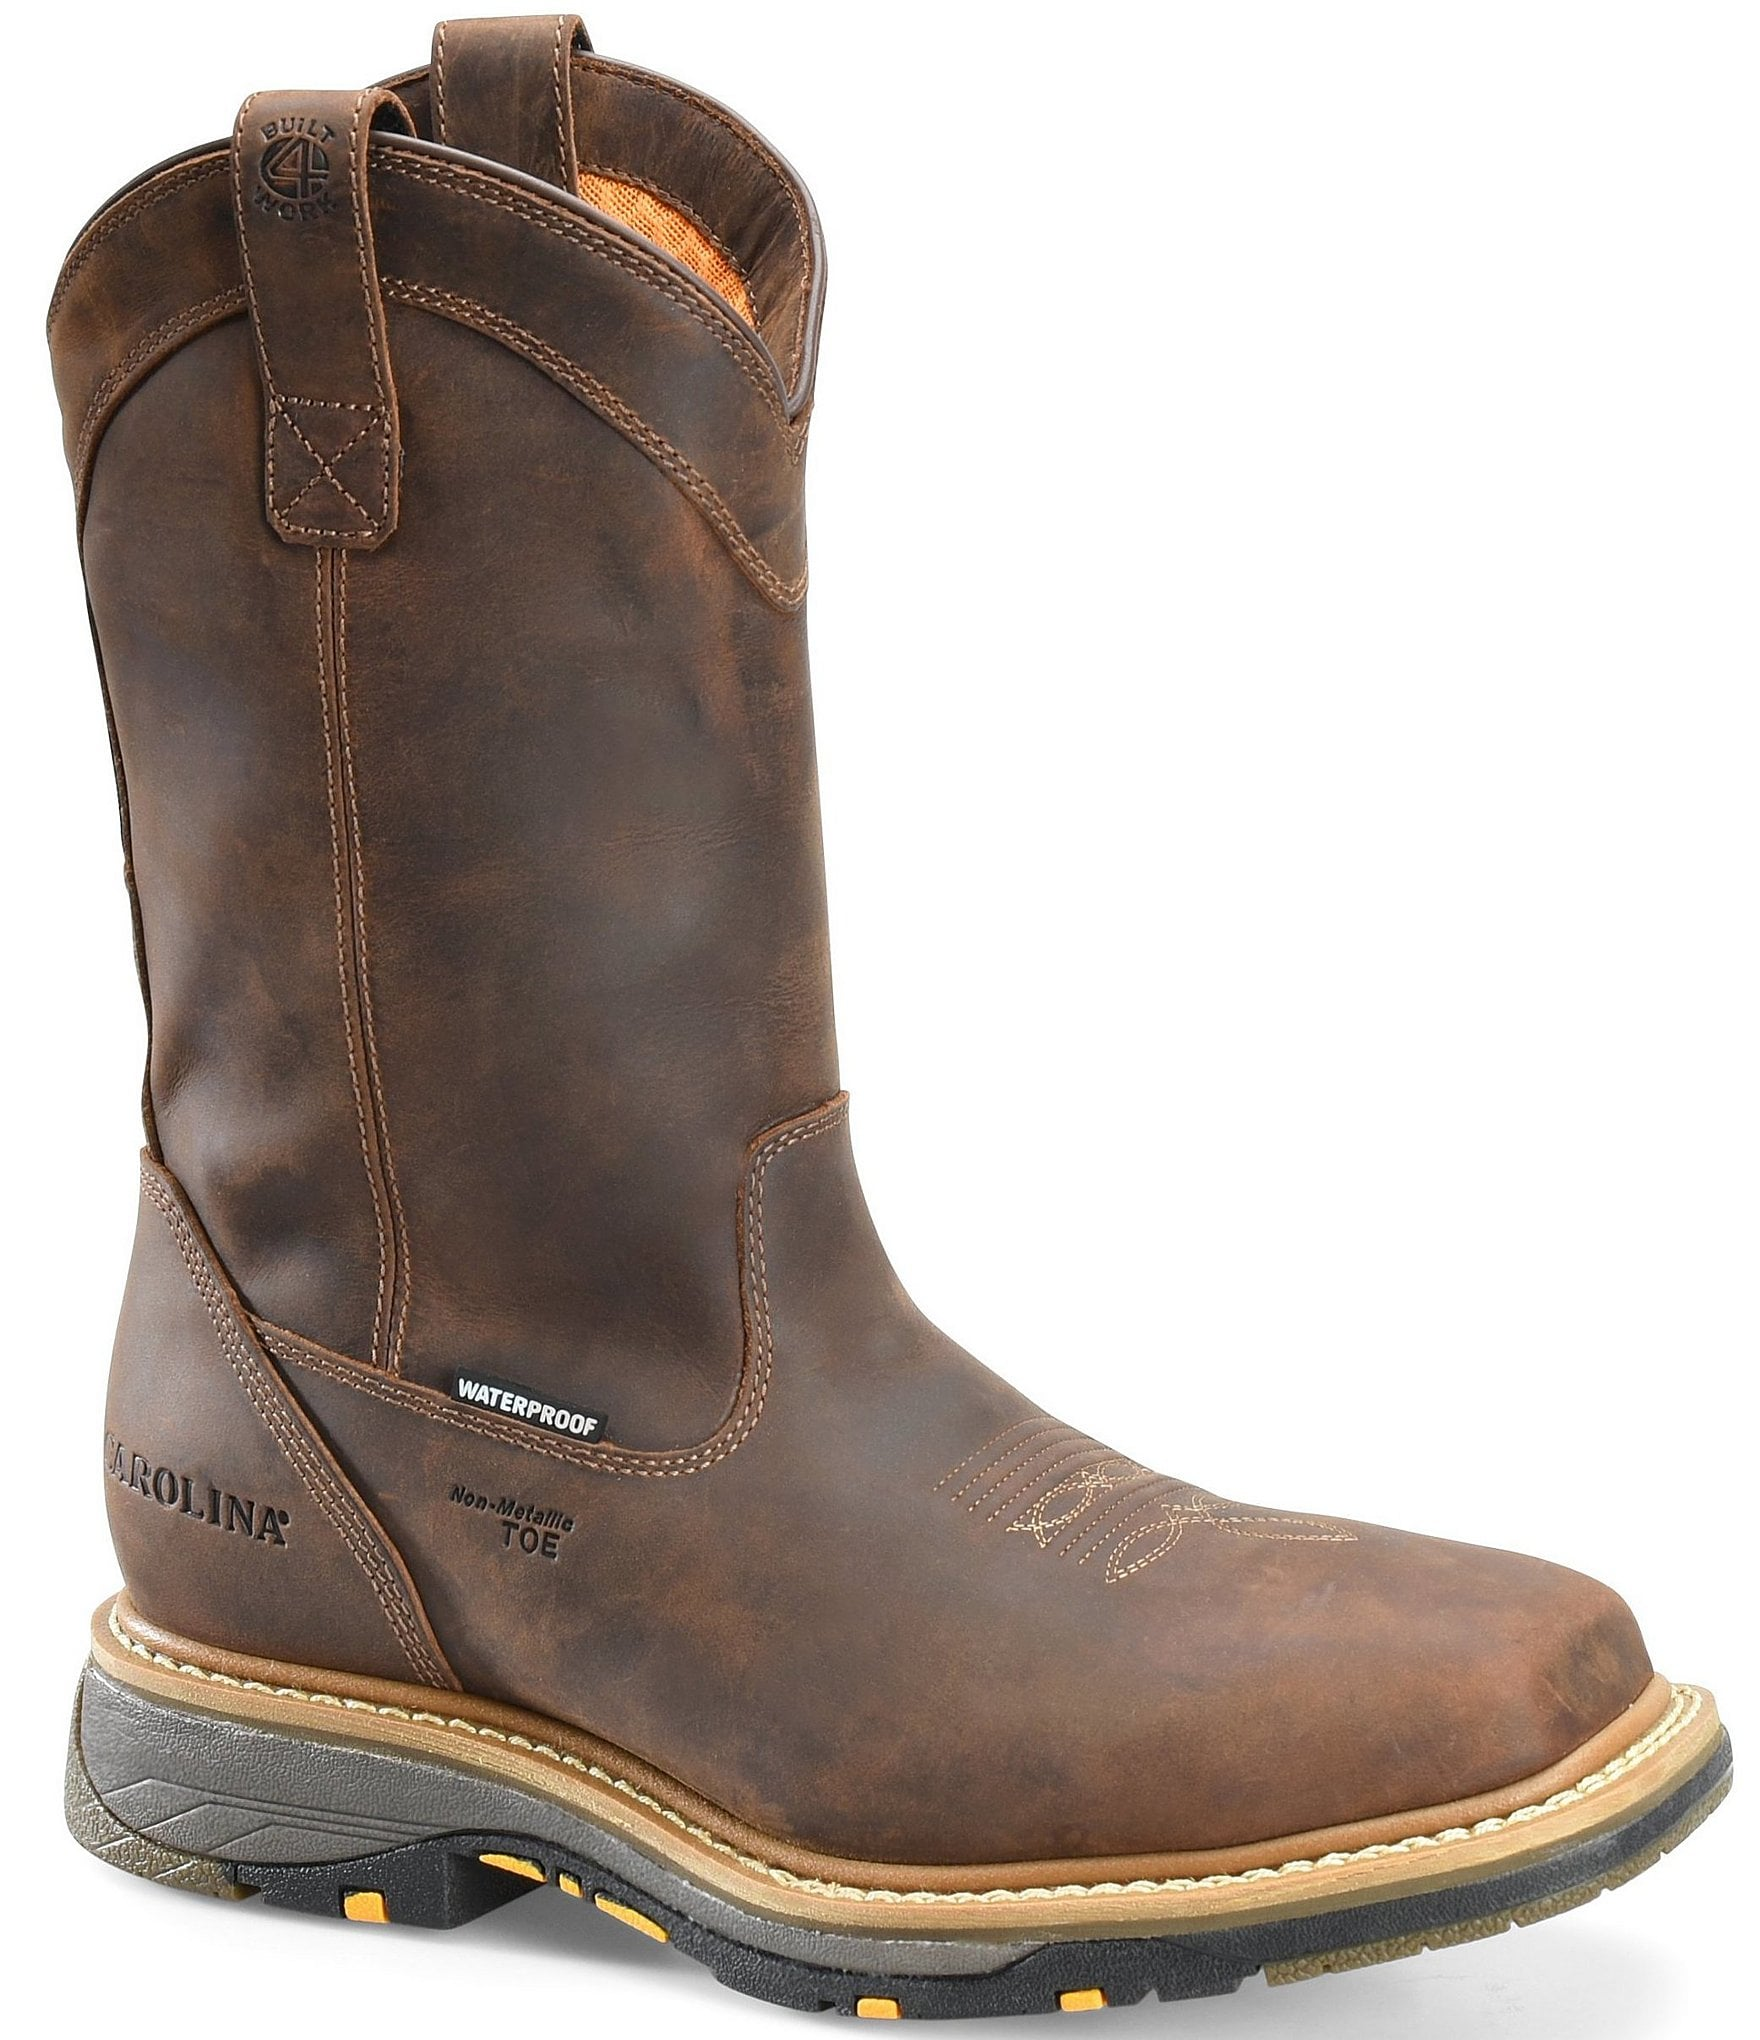 e3144e3ec40 Carolina Men's 11#double; WorkFlex Waterproof Composite Square Toe Roper  Work Boots